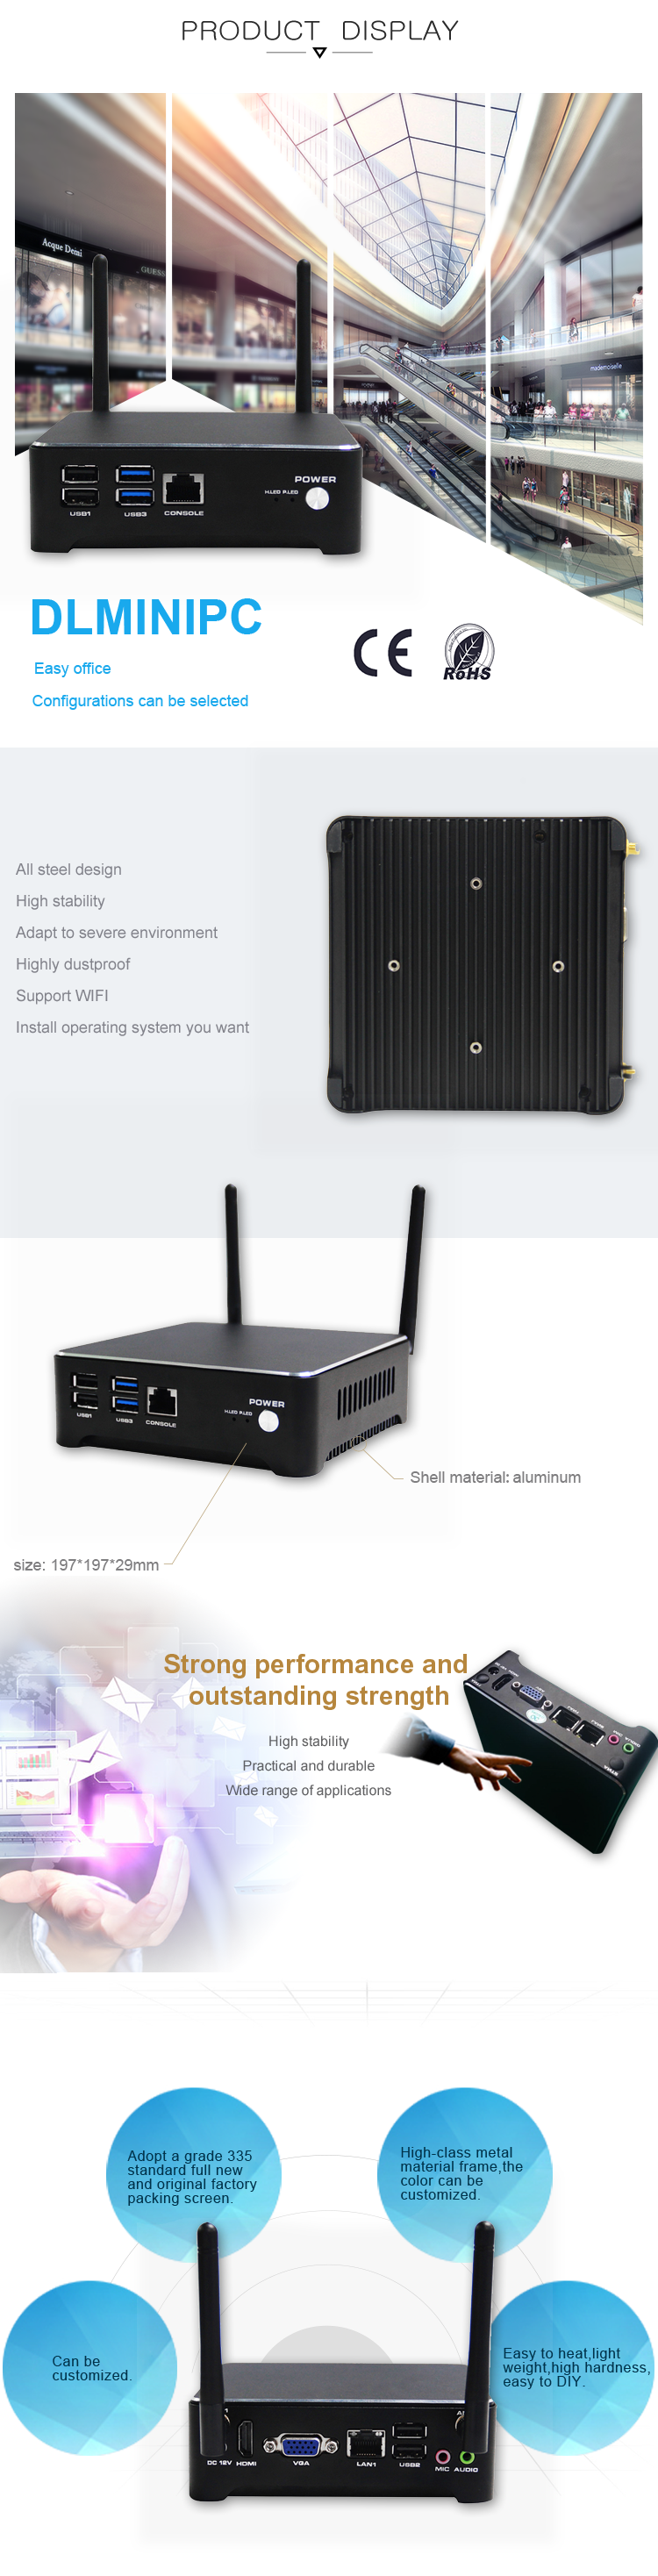 Quad Core 2.0Ghz all in one mini PC